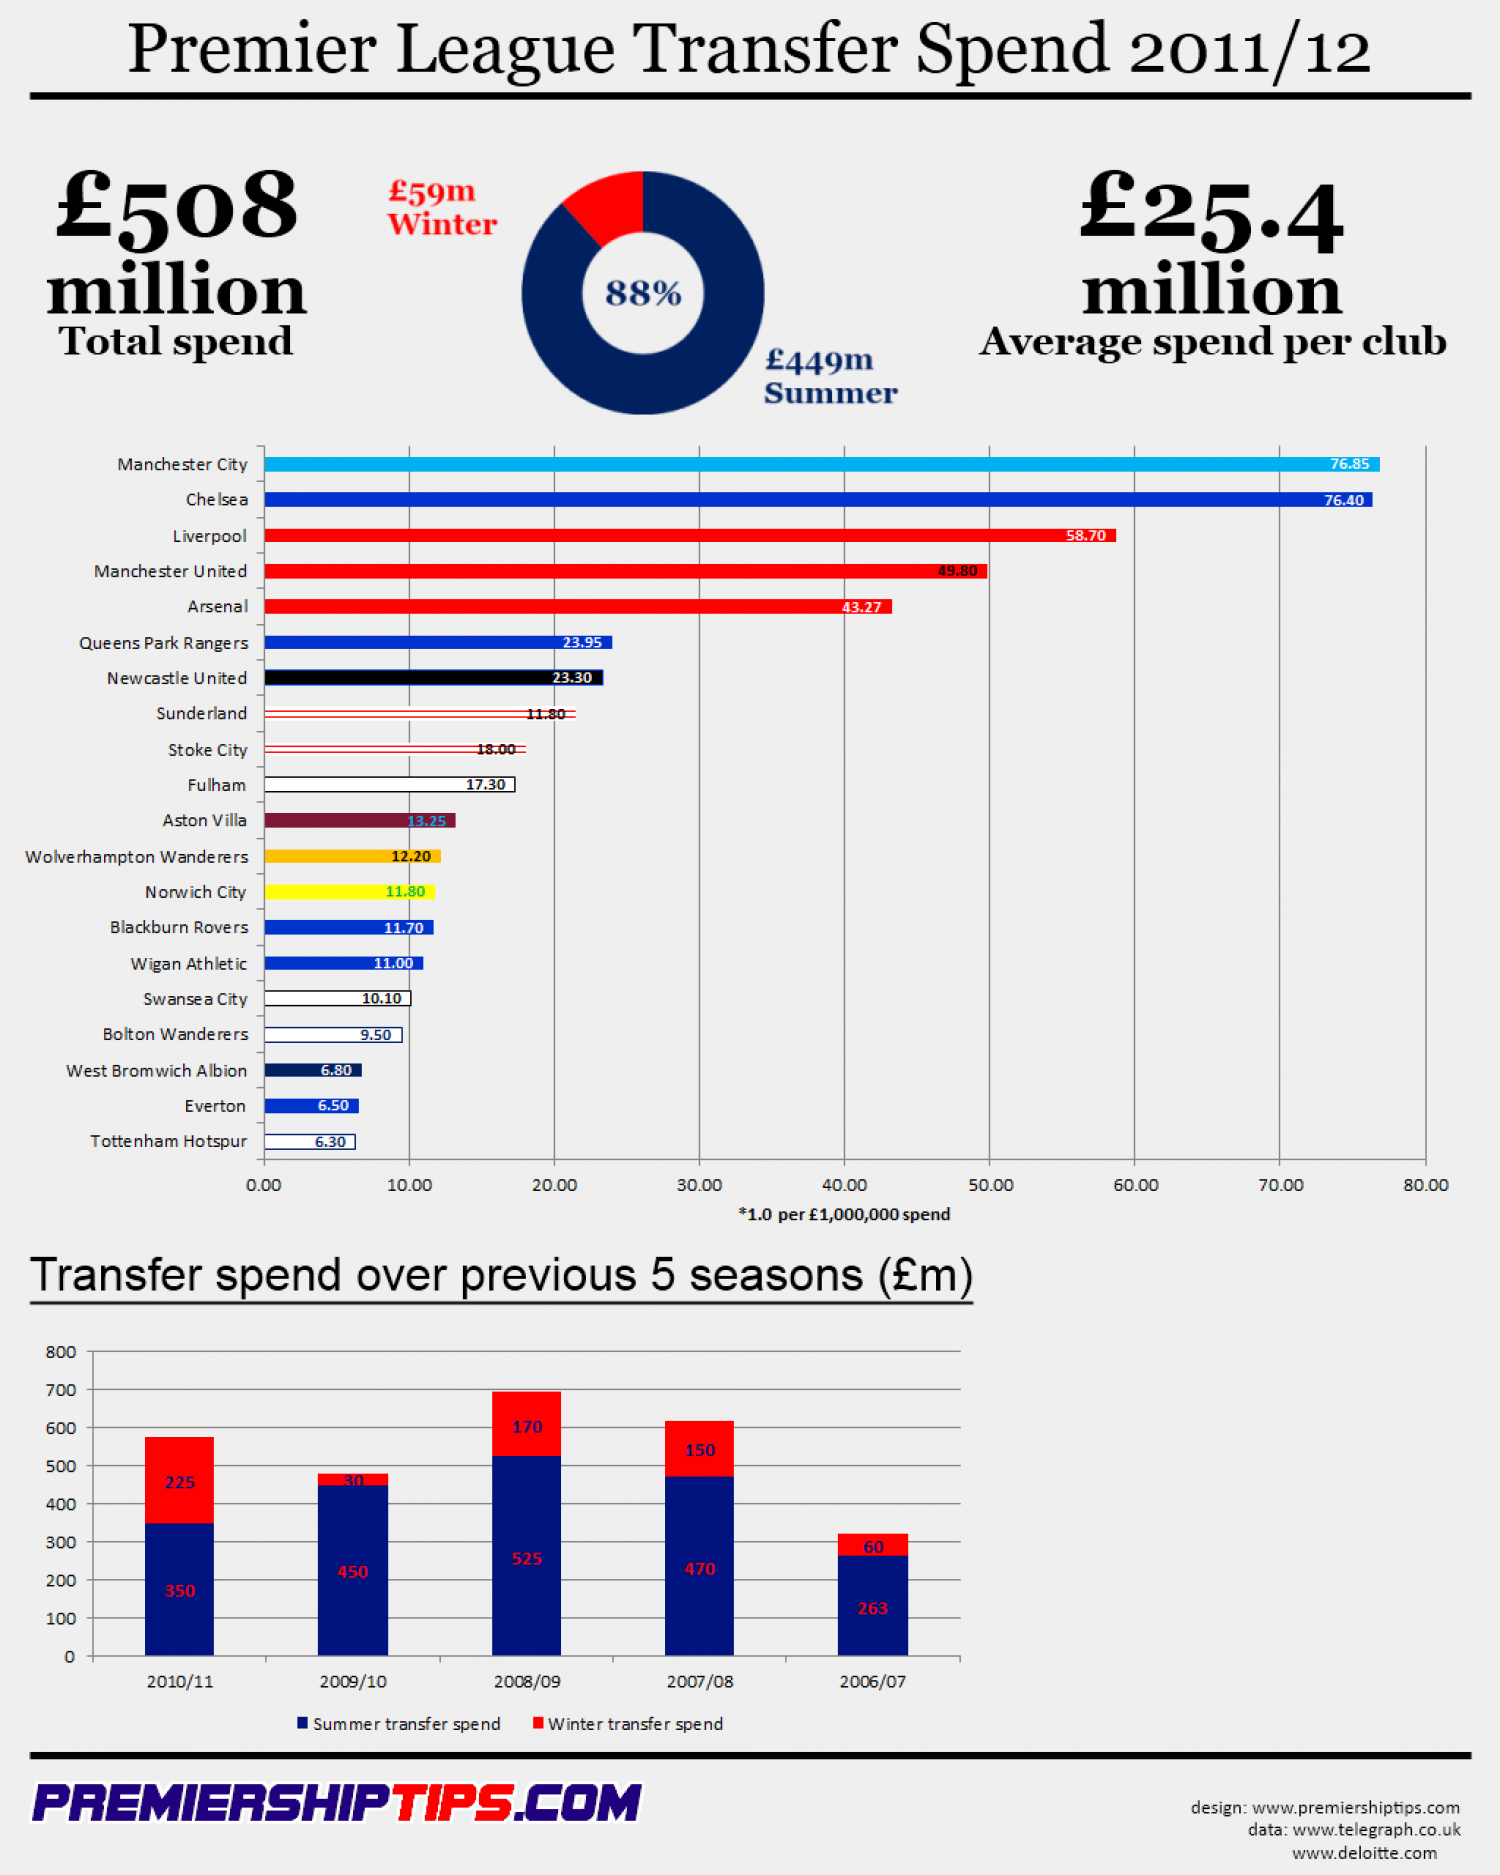 Premier League Transfer Spend 2011/12 Infographic